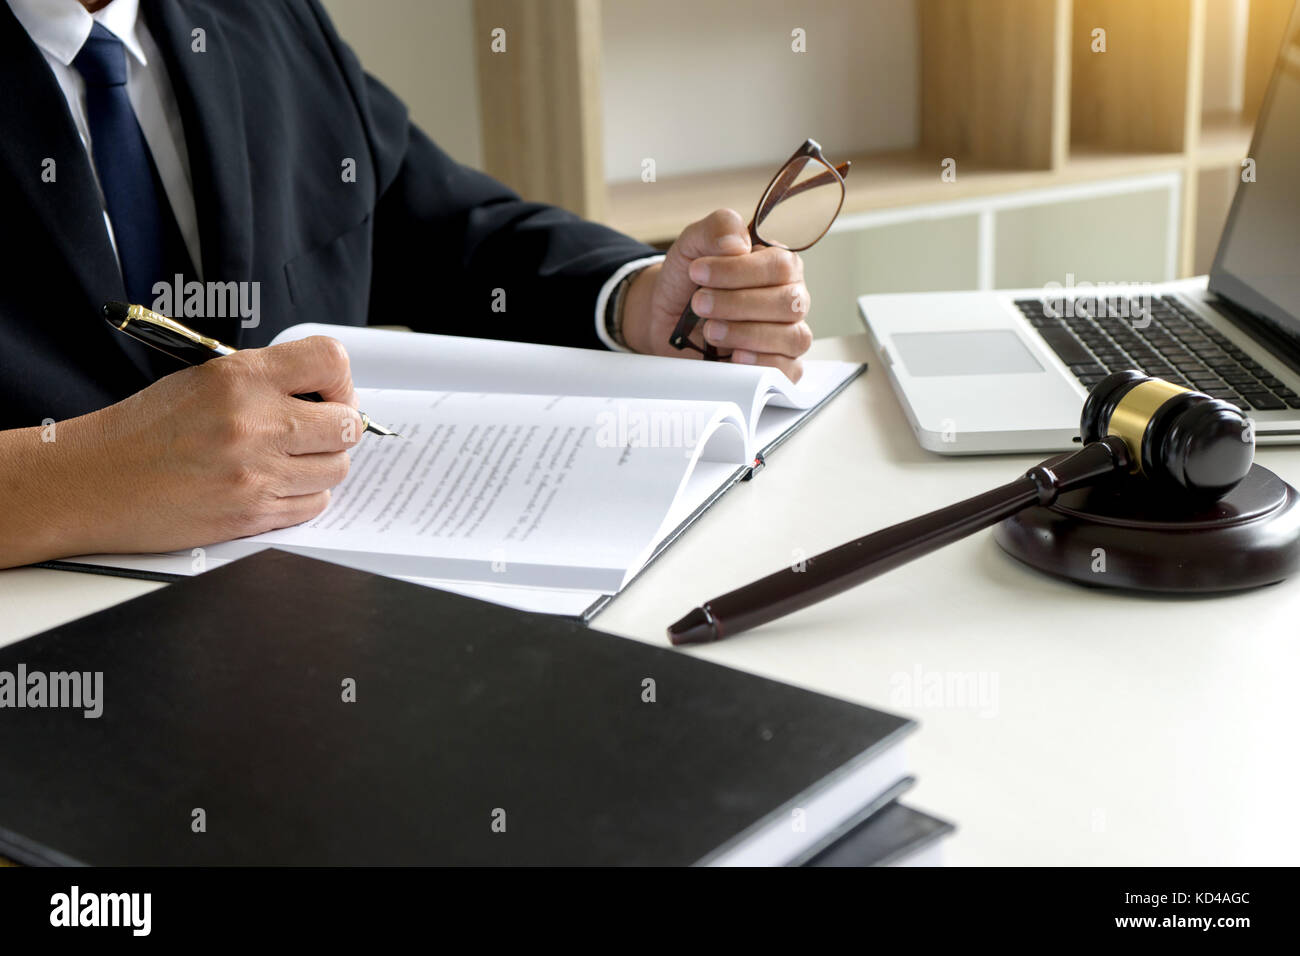 Judge gavel with Justice lawyers Plaintiff or defendant  meeting at law firm in background. Concept of law. - Stock Image